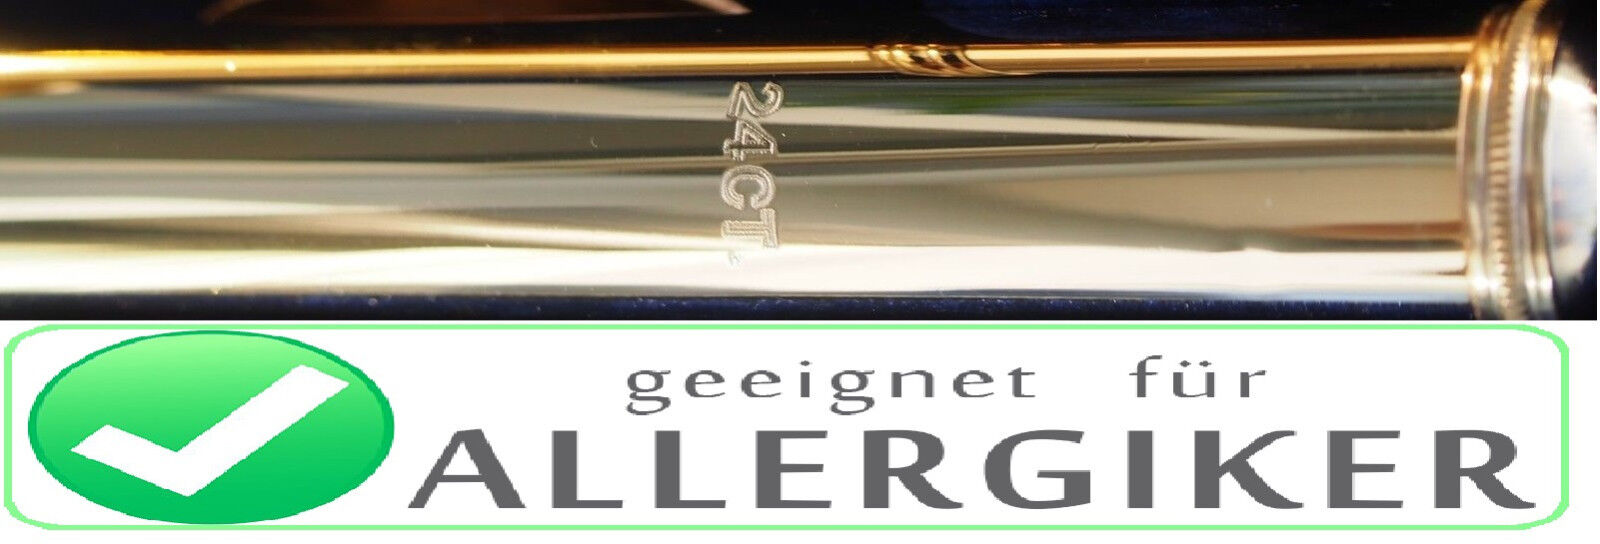 Querflöte 24 ct Gold Kopf Head 24ct Gold for Flute  ALLERGIEFREI